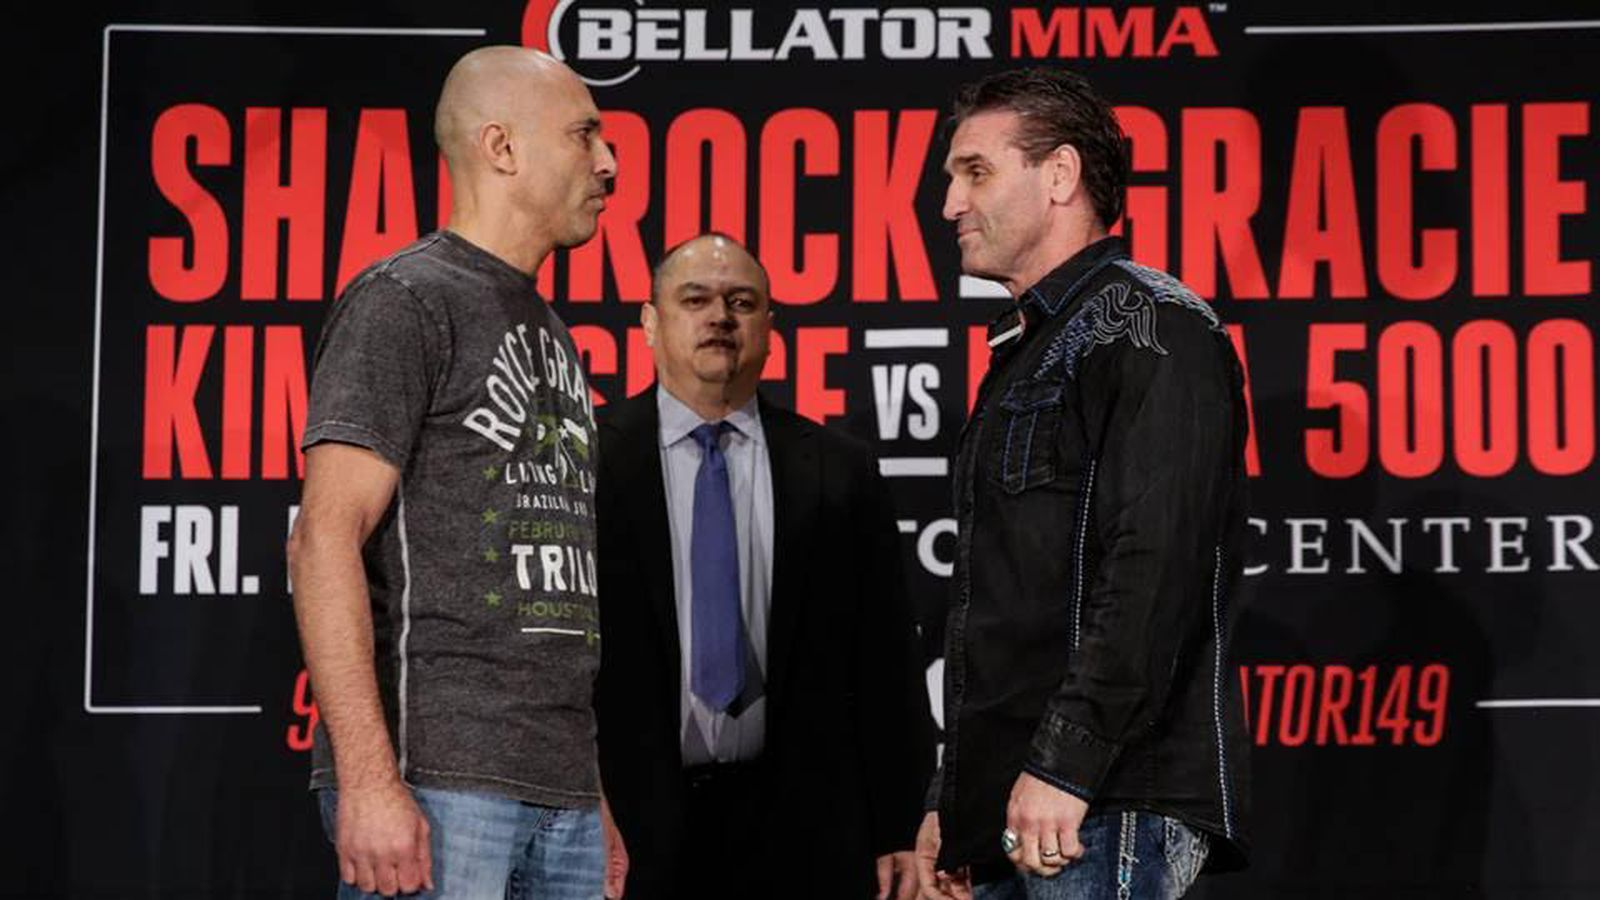 bellator 149 shamrock vs gracie preview predictions and